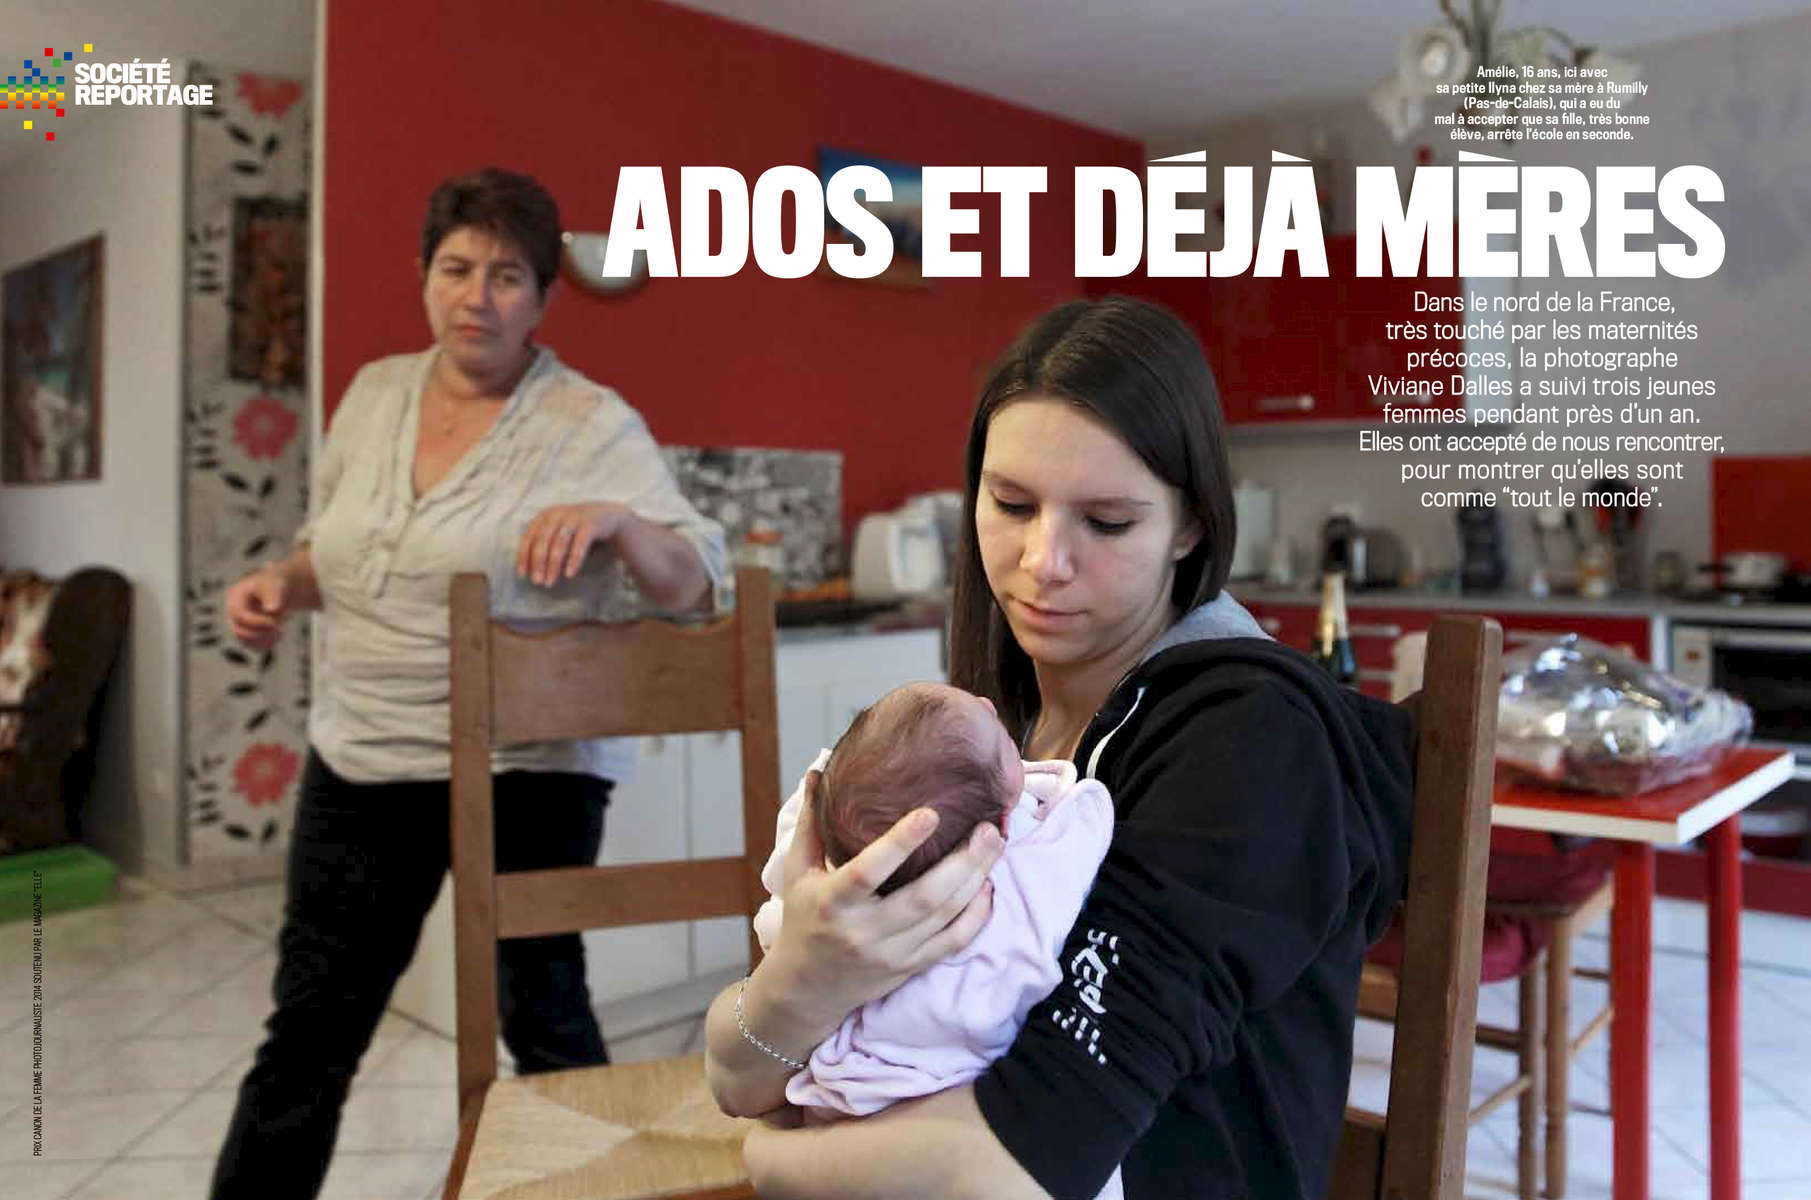 Teenage Motherhood in FranceFrench magazine VSD, January 2016